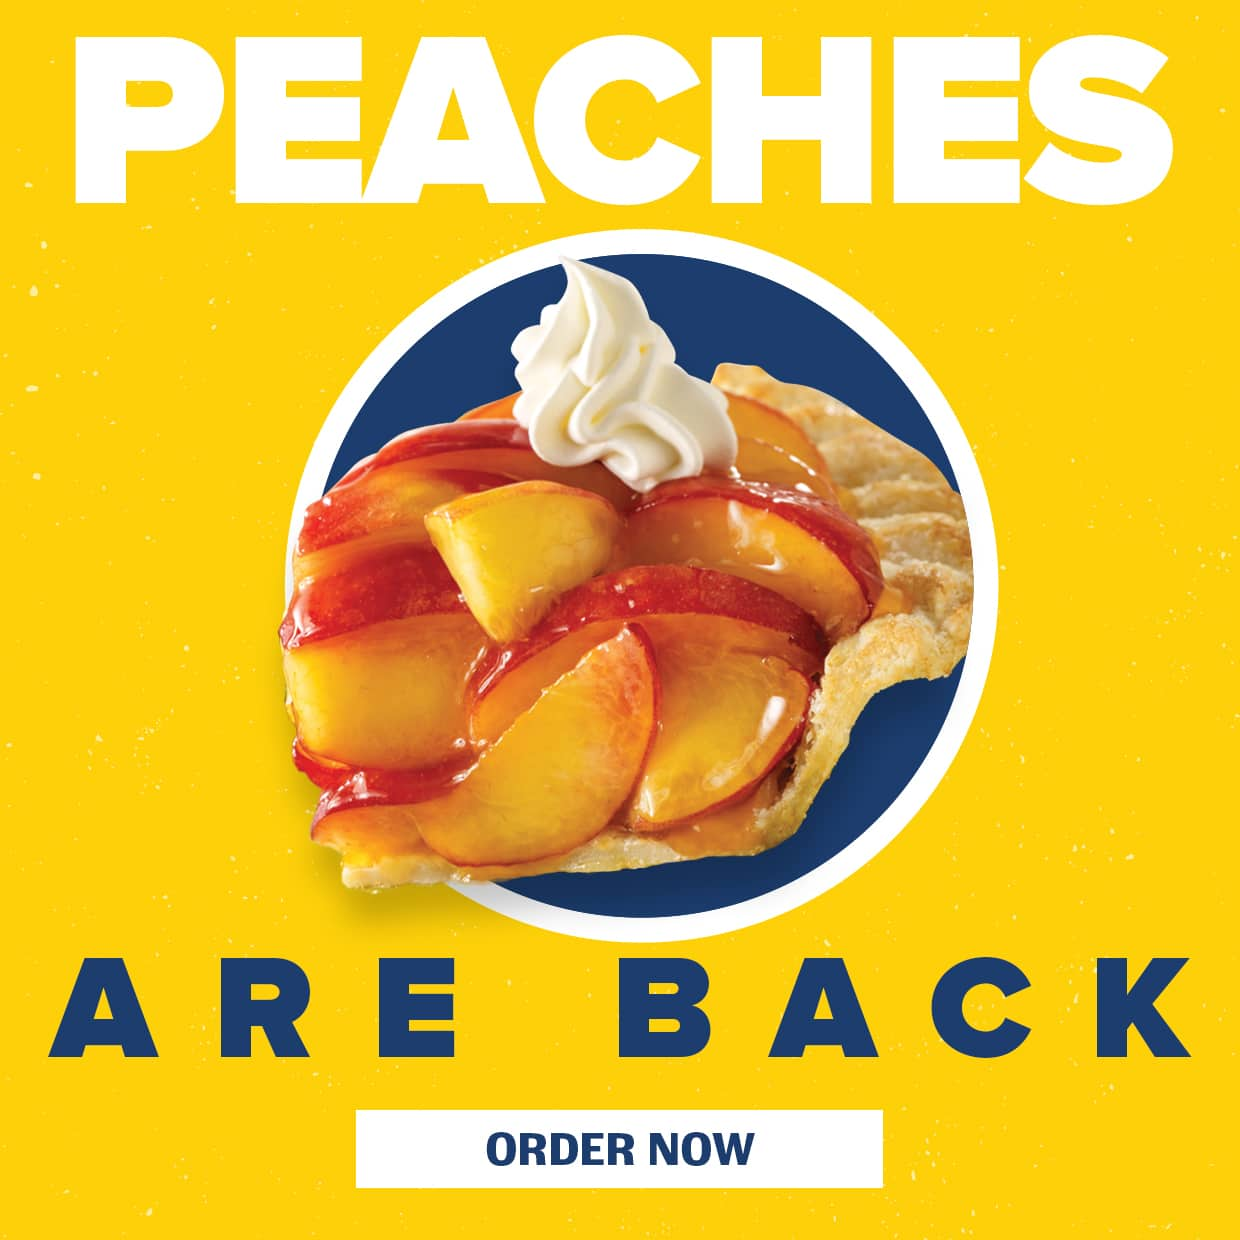 Peaches are Back! Order Now.